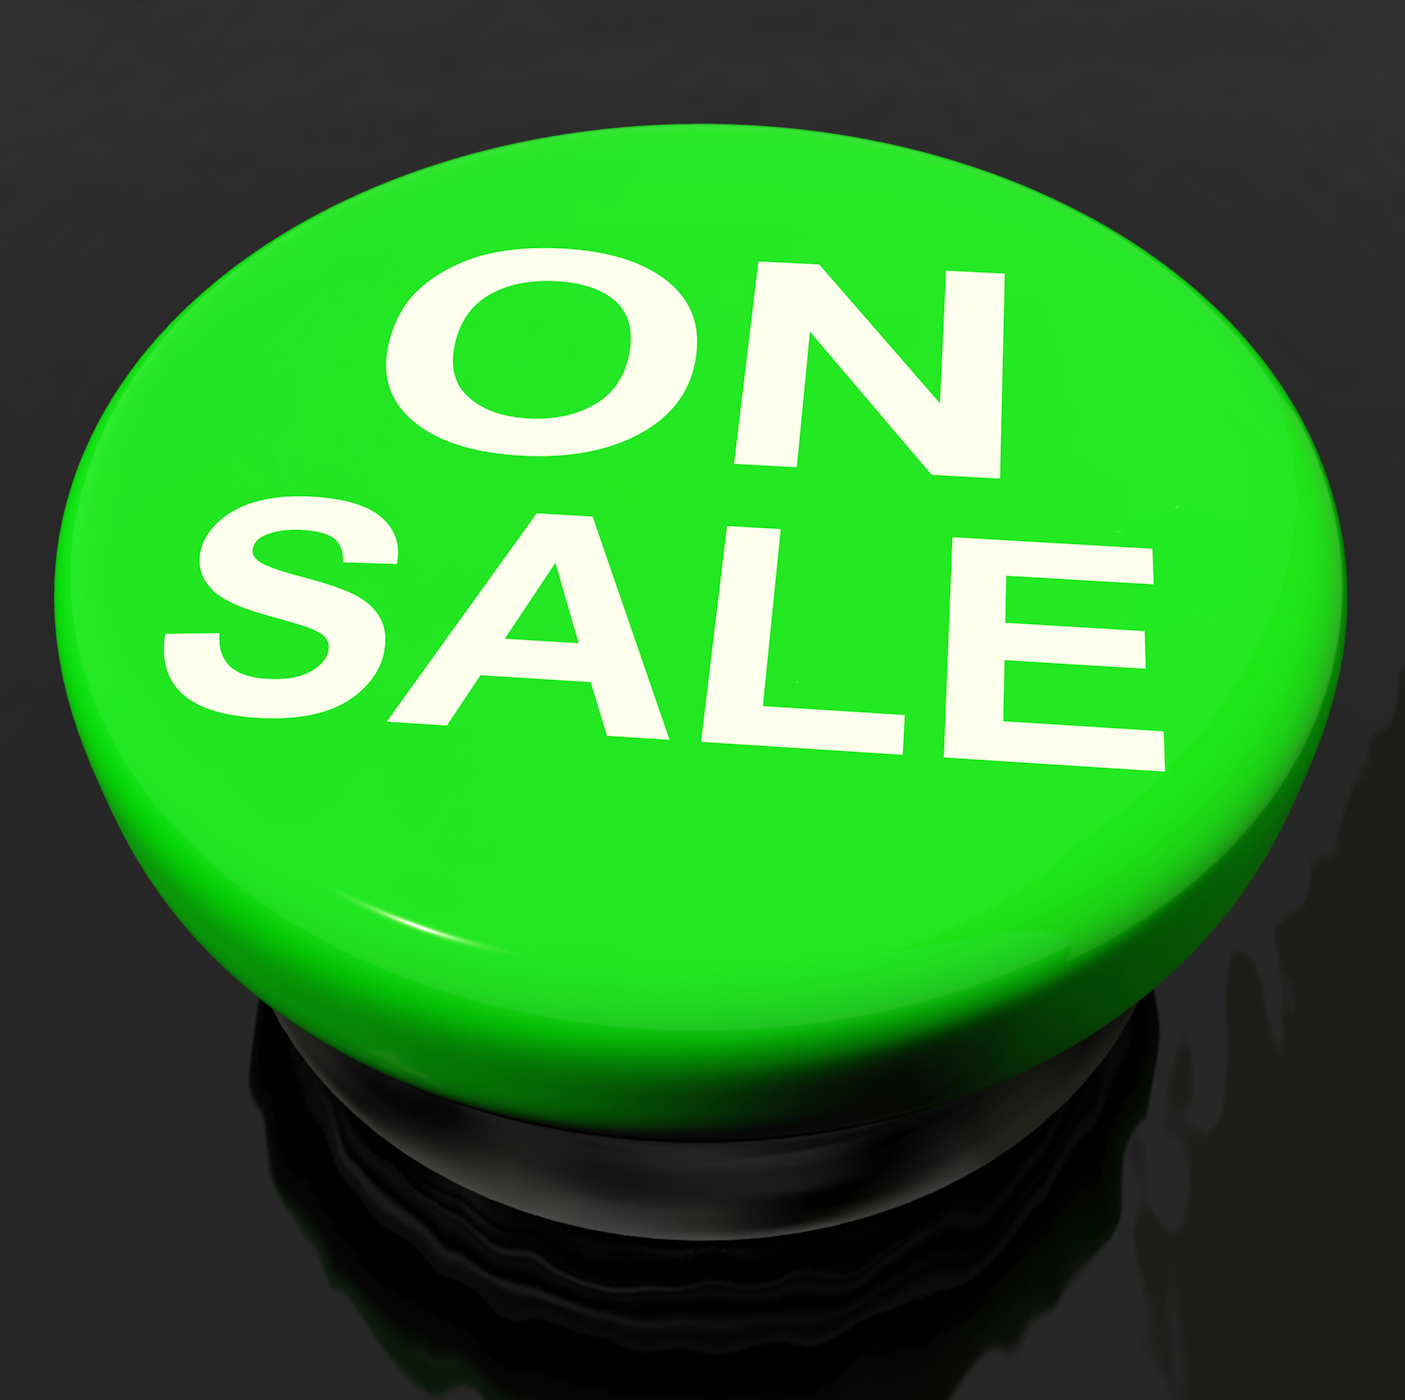 Sale now button shows promotional savings or discounts photo